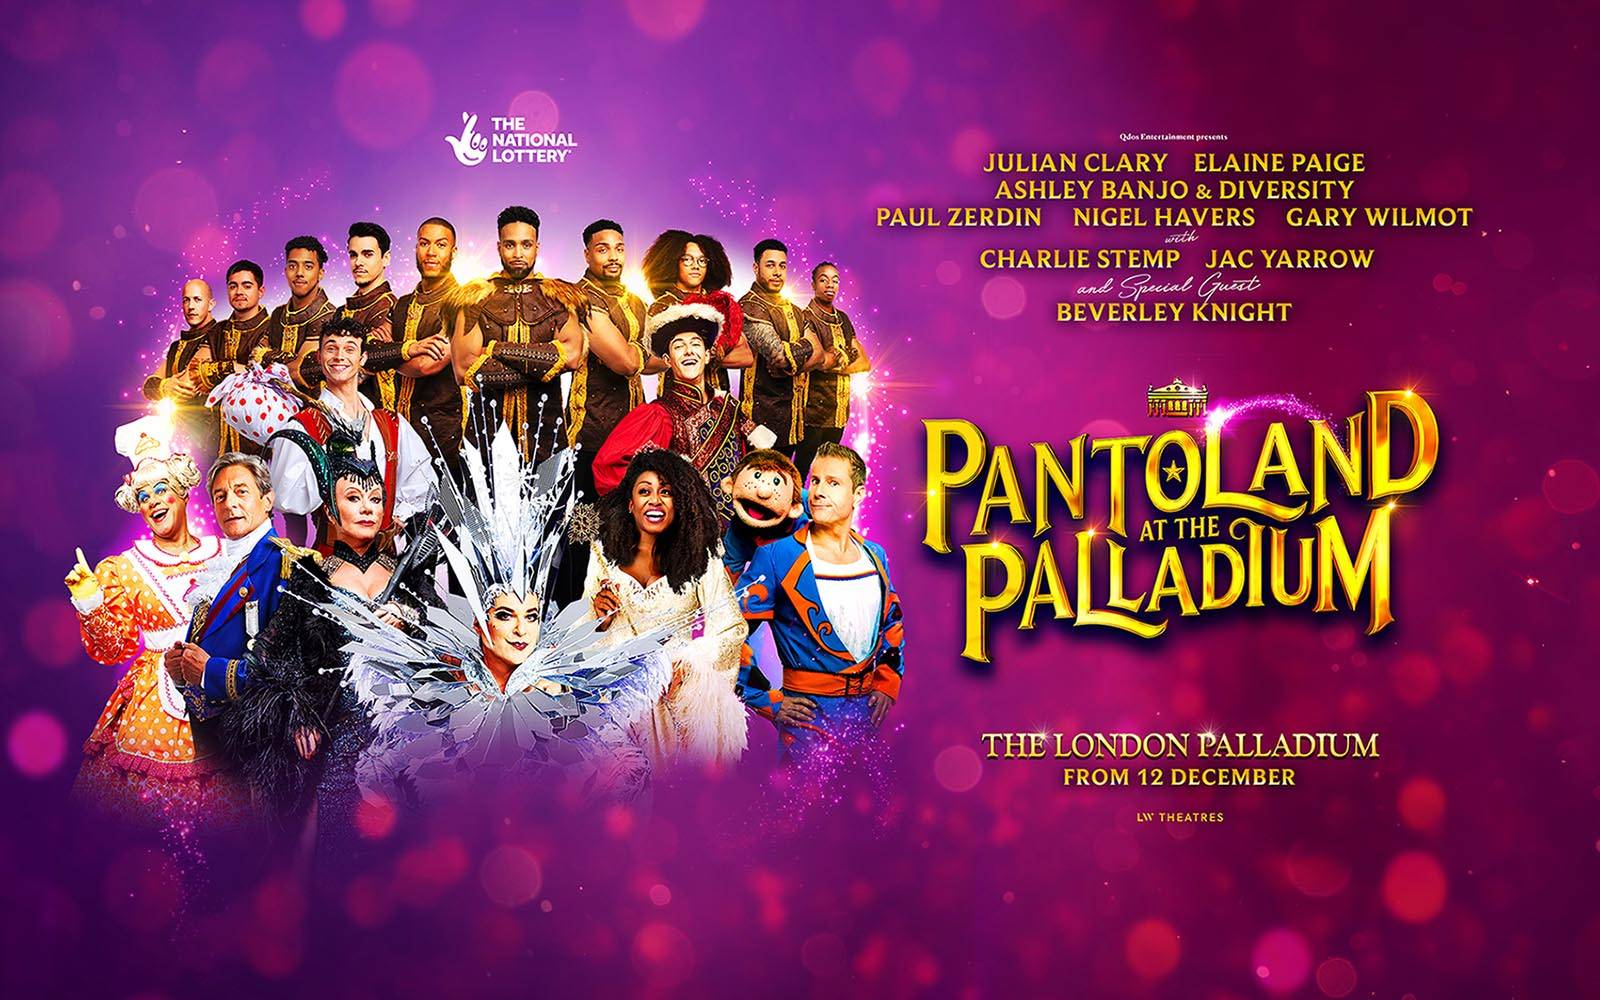 pantoland at the palladium poster